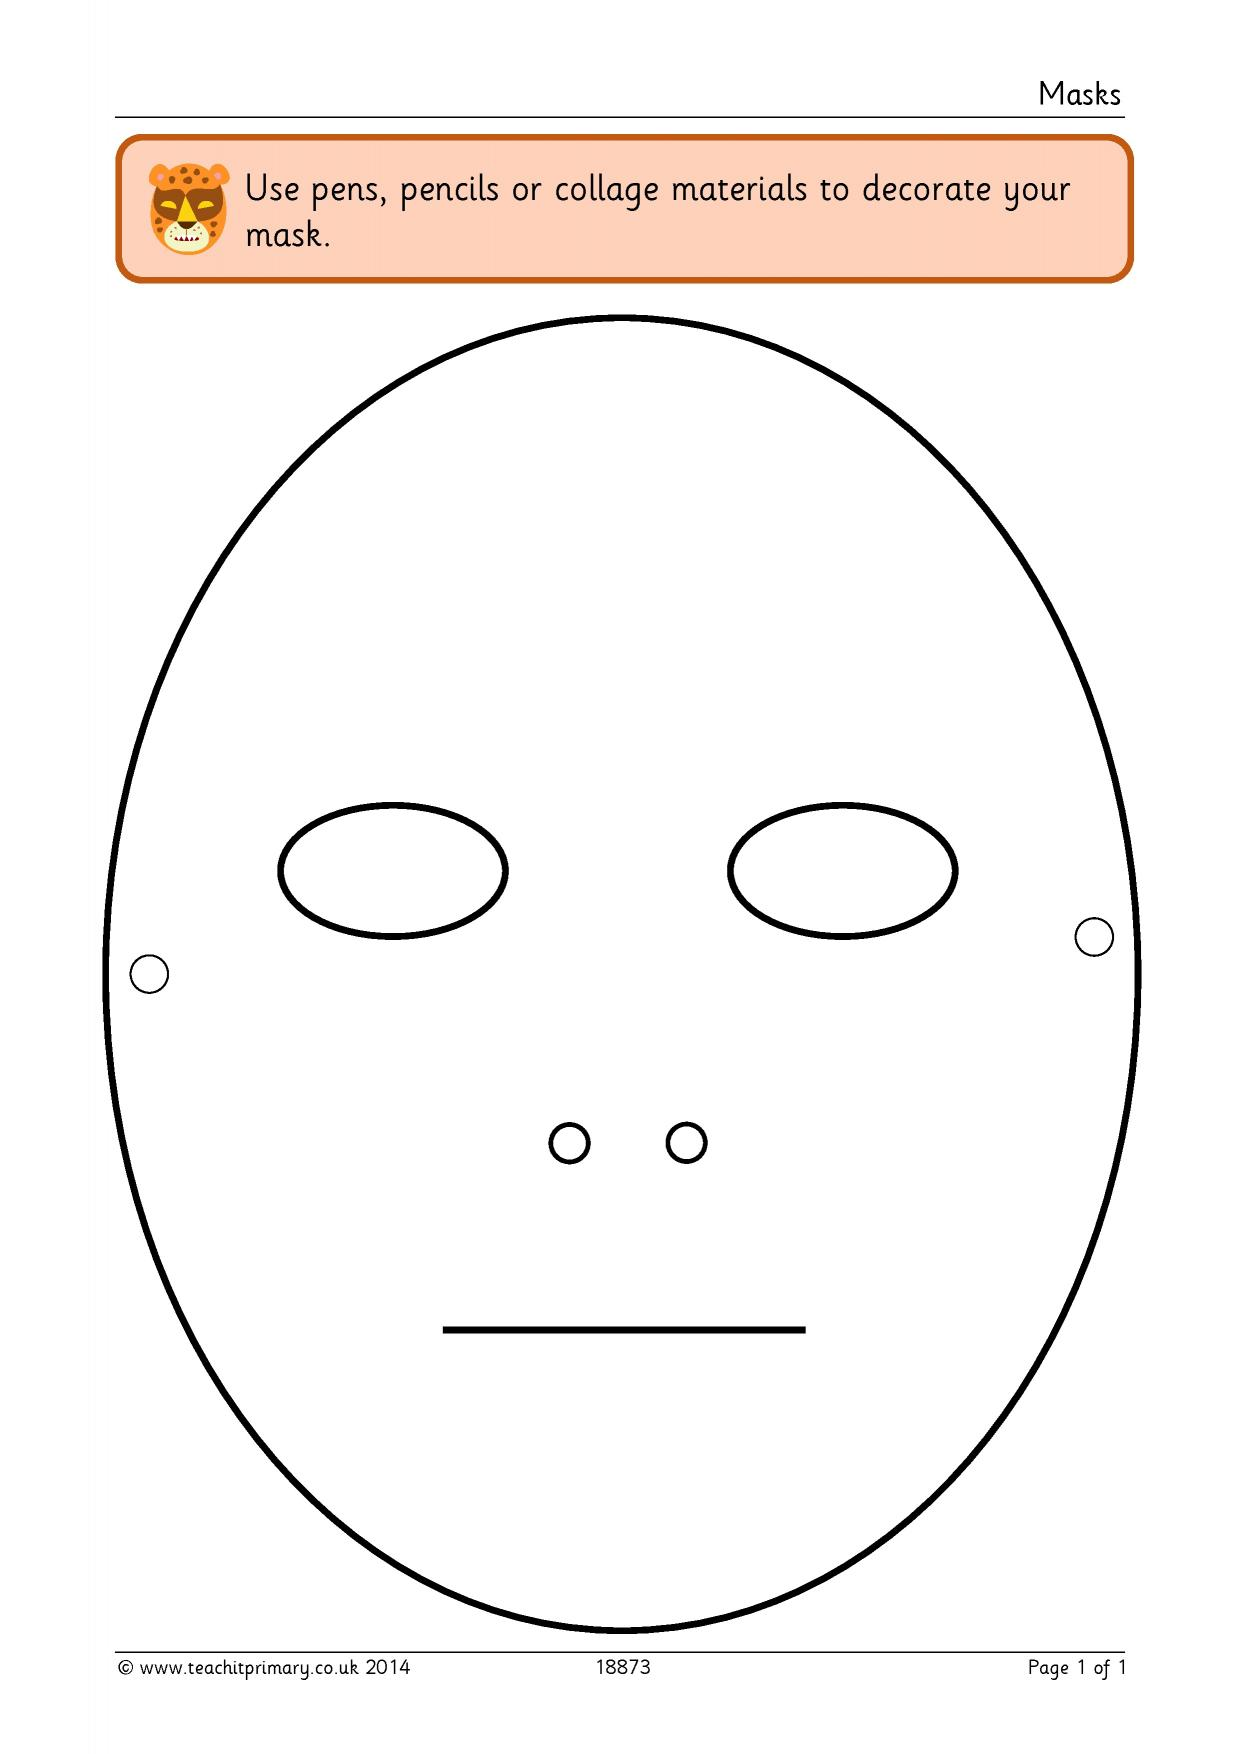 Mask template - Drama and role play - Templates - Home page